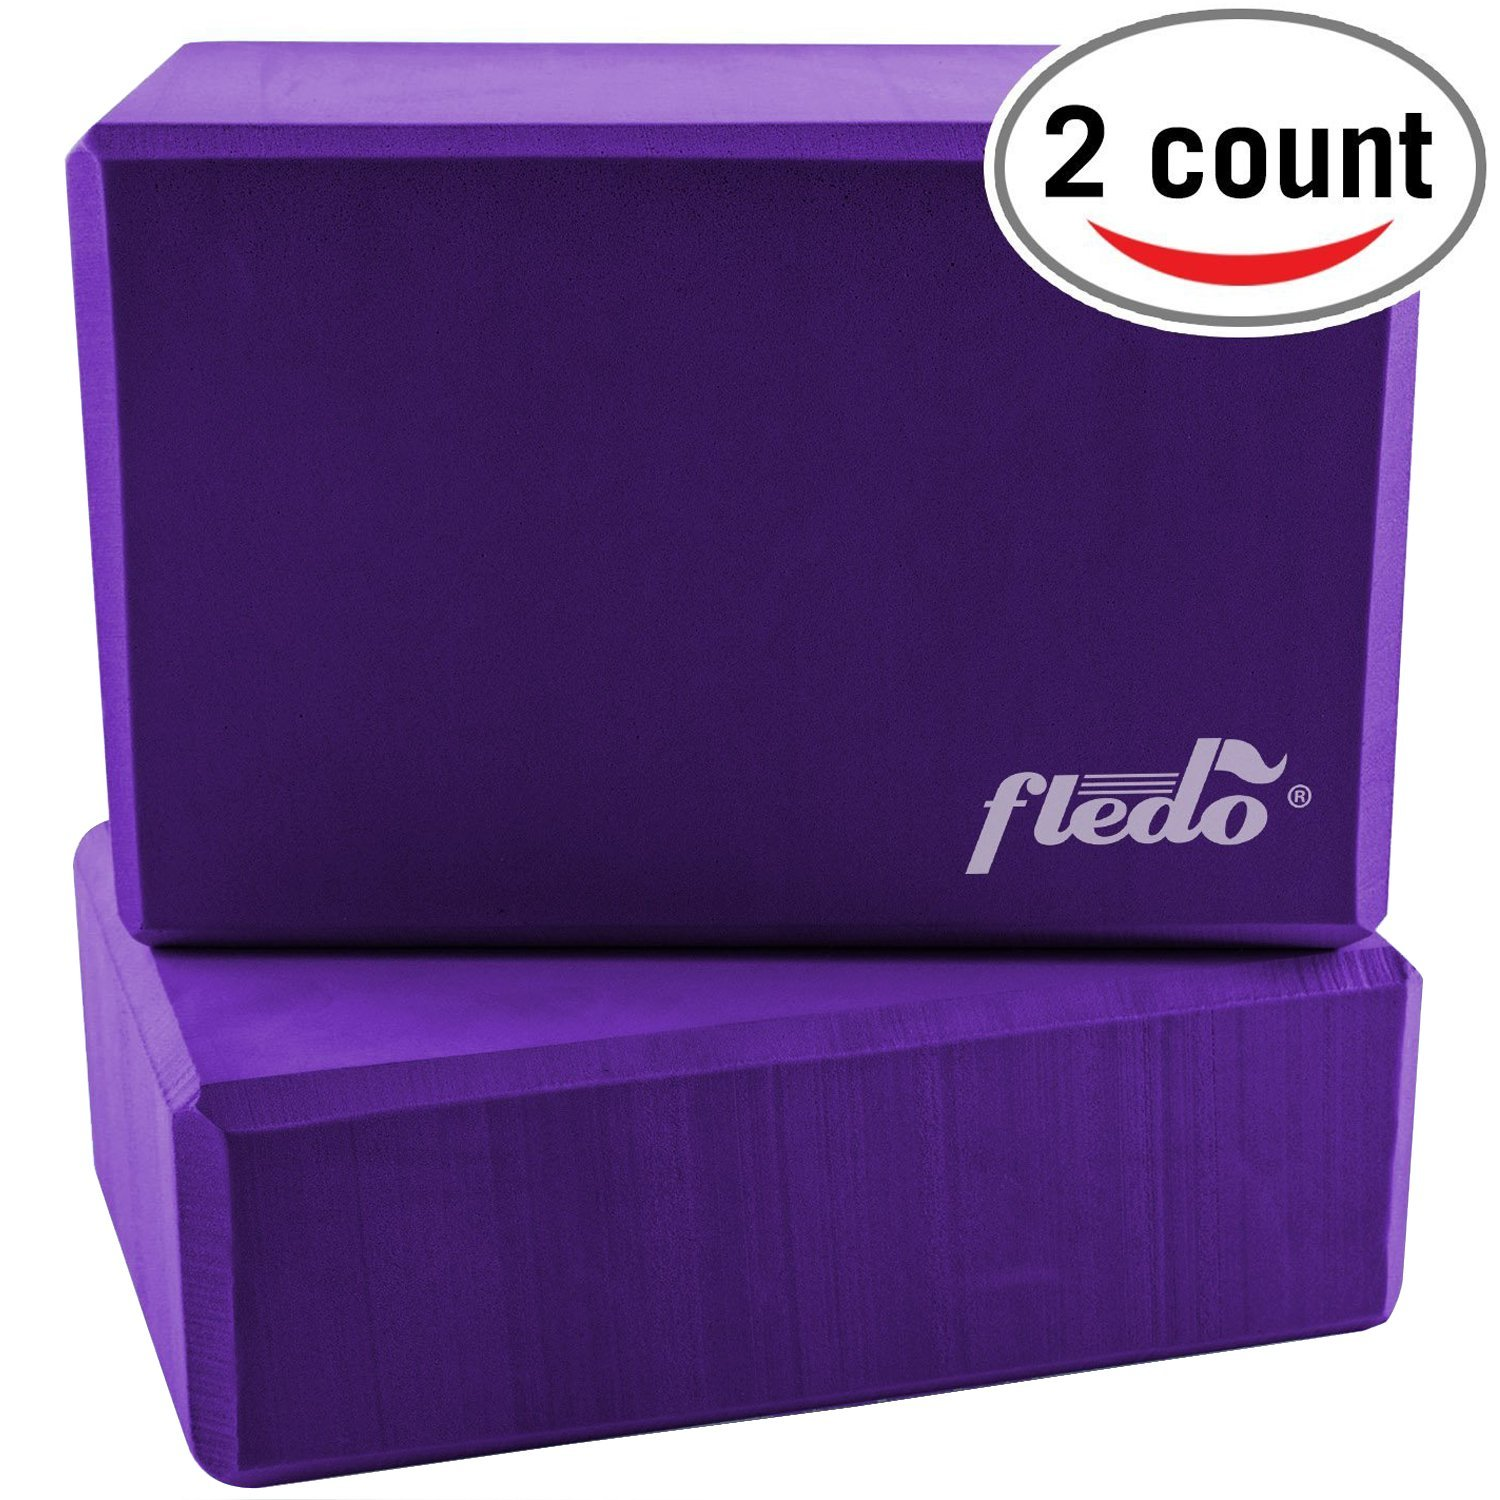 fledo purple eva foam yoga blocks